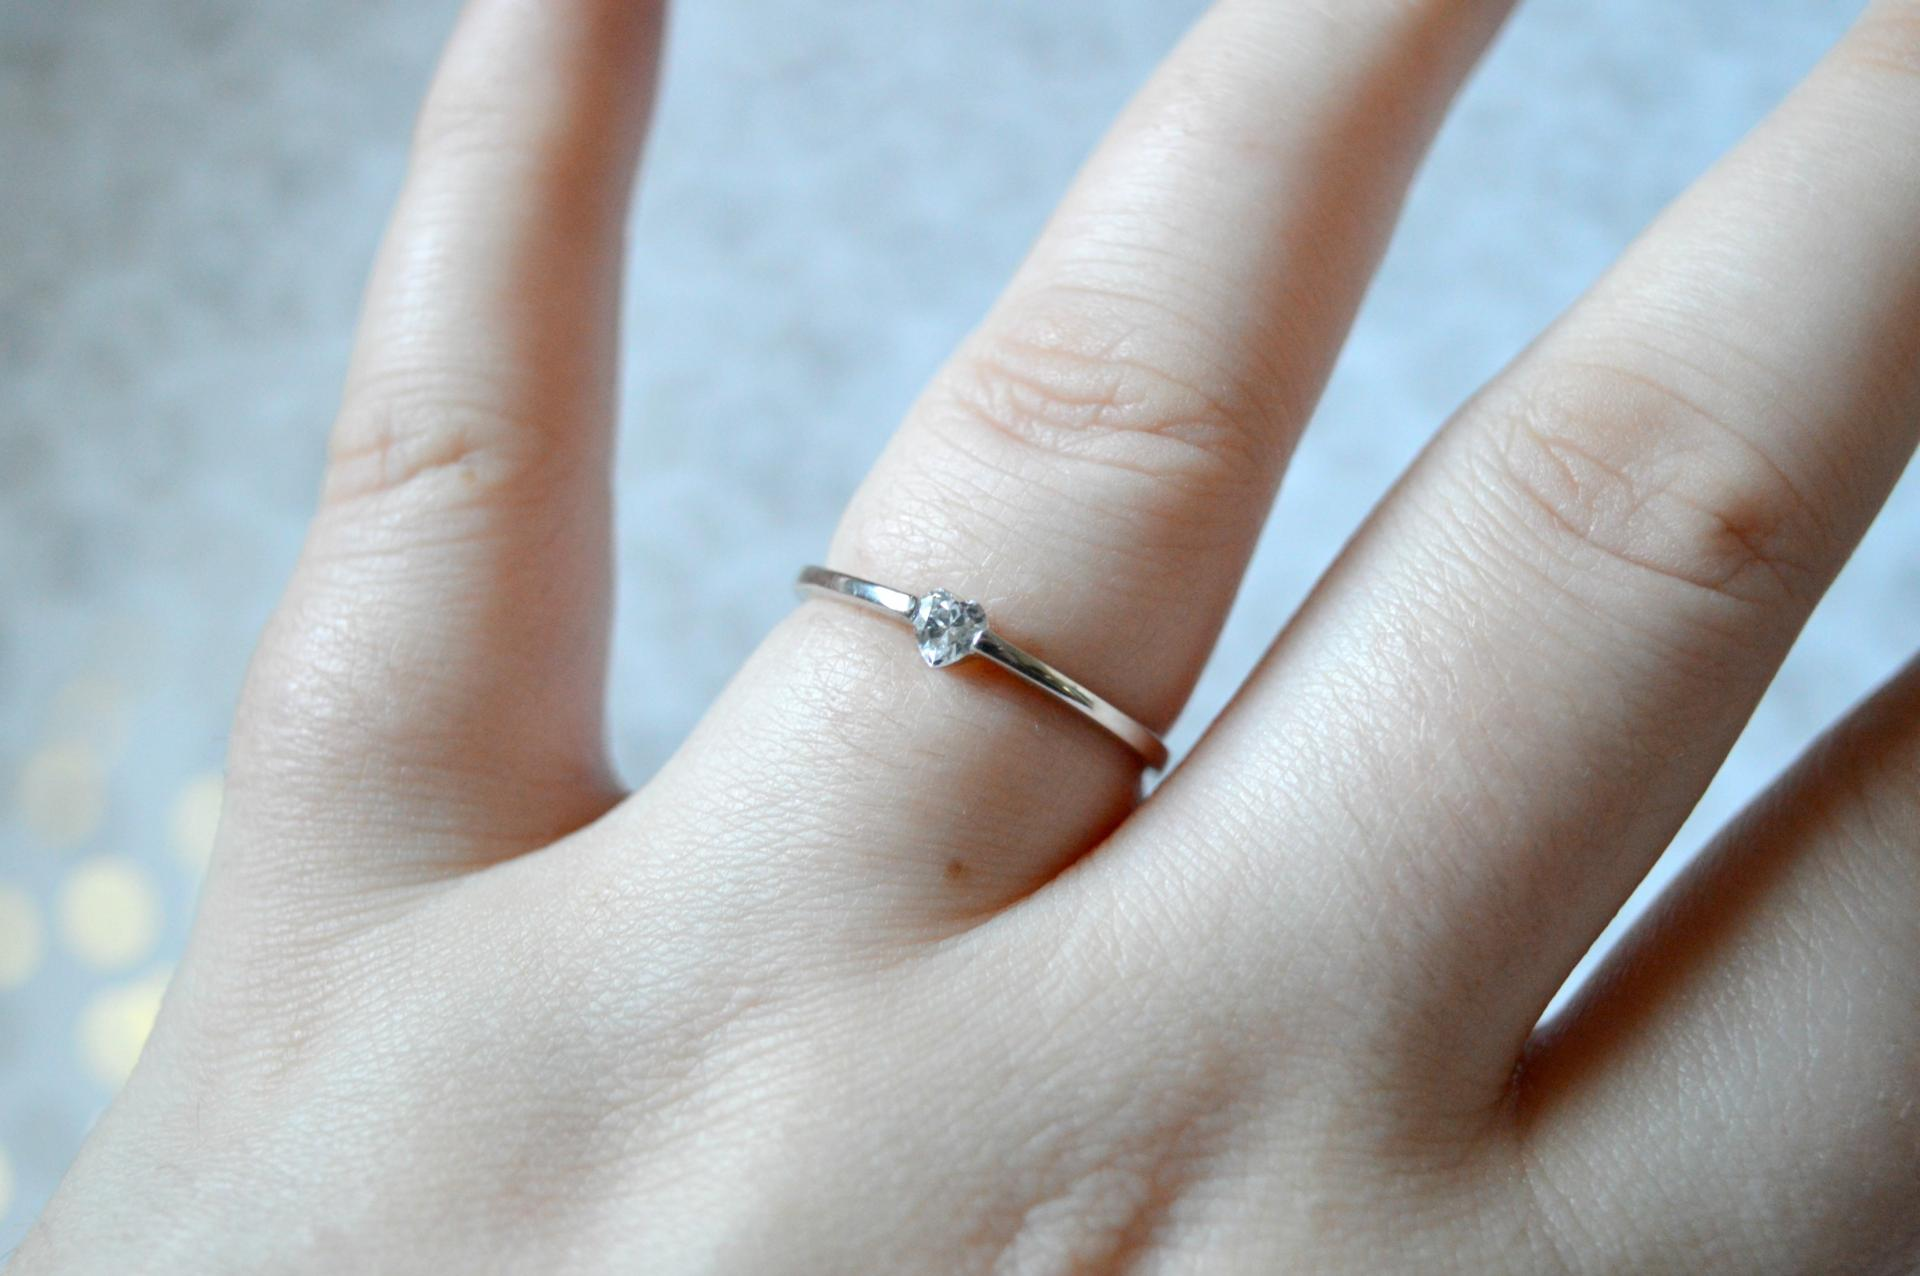 bamoer Simple Heart Ring from AliExpress